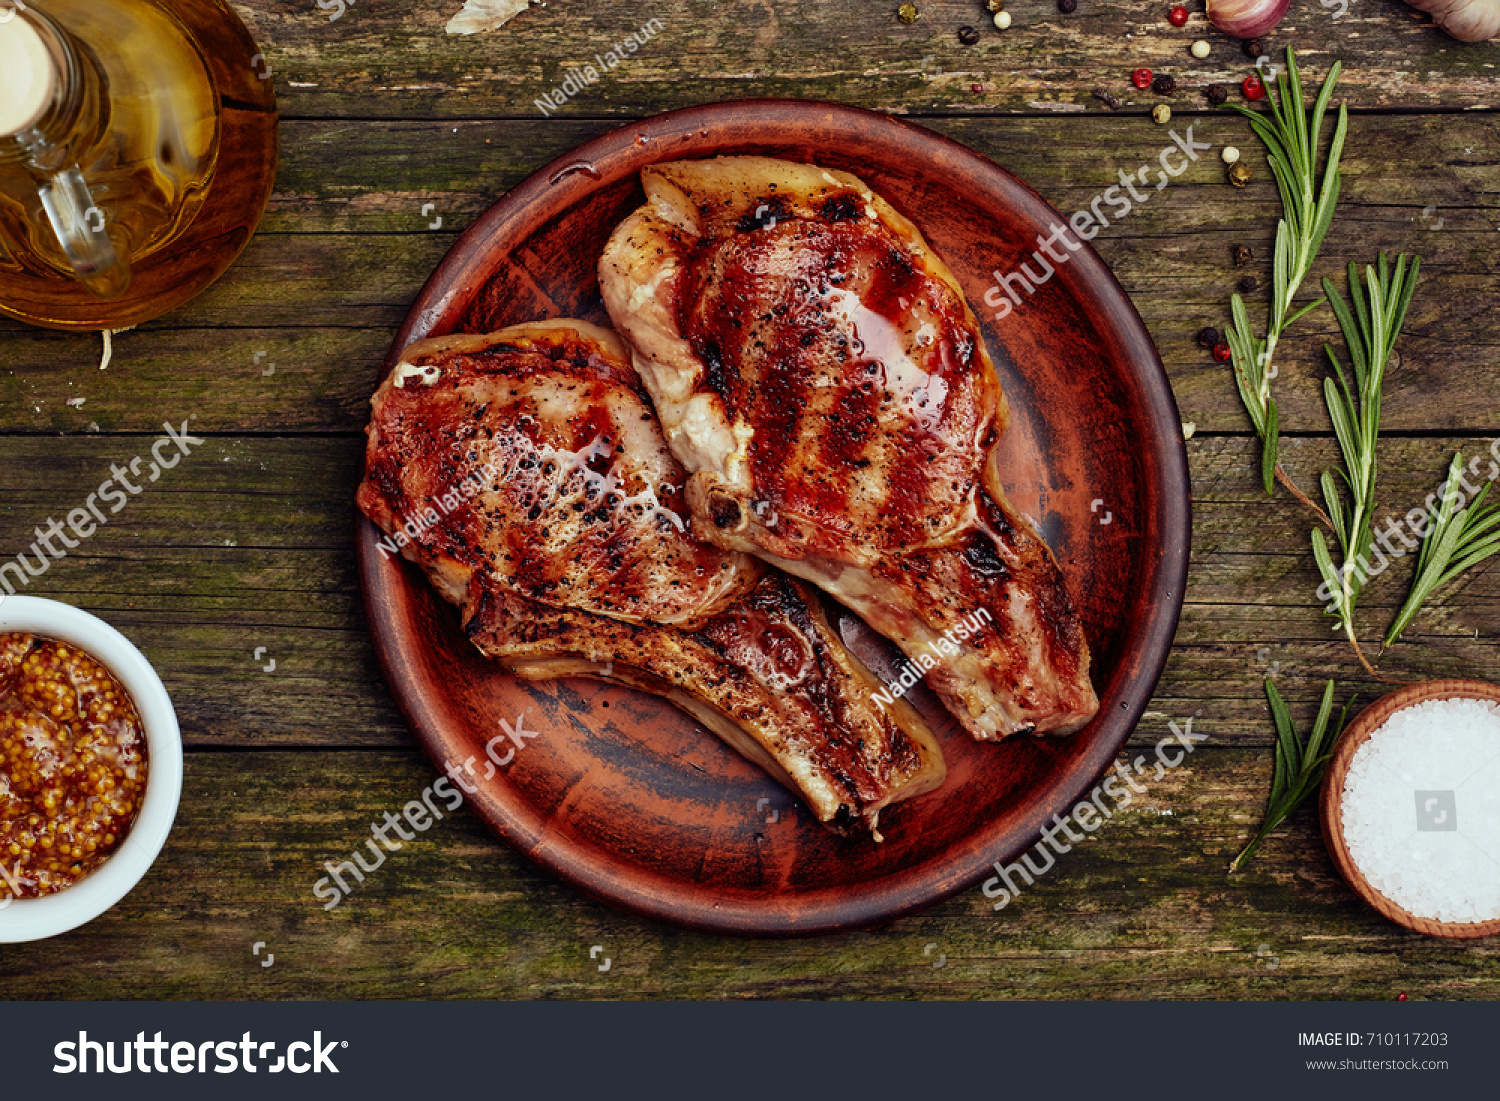 Grilled pork rib chop steak in a clay plate  with oil, mustard, salt and rosemary on an old rustic wooden table. Top view, flat lay.